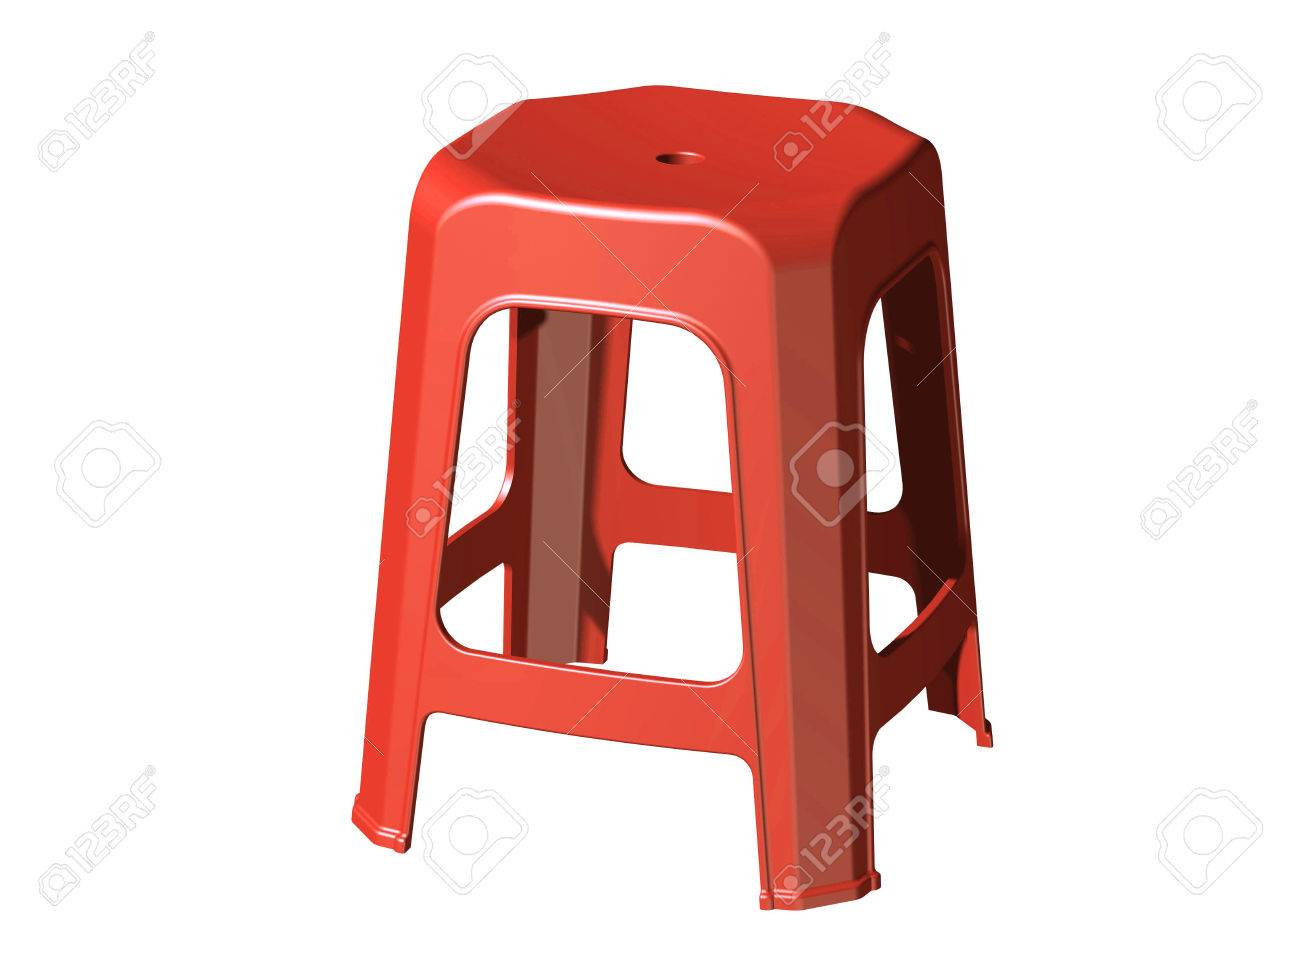 3D plastic stool chair perspective view Red color Stock Photo - 25836900  sc 1 st  123RF Stock Photos & 3D Plastic Stool Chair Perspective View Red Color Stock Photo ... islam-shia.org